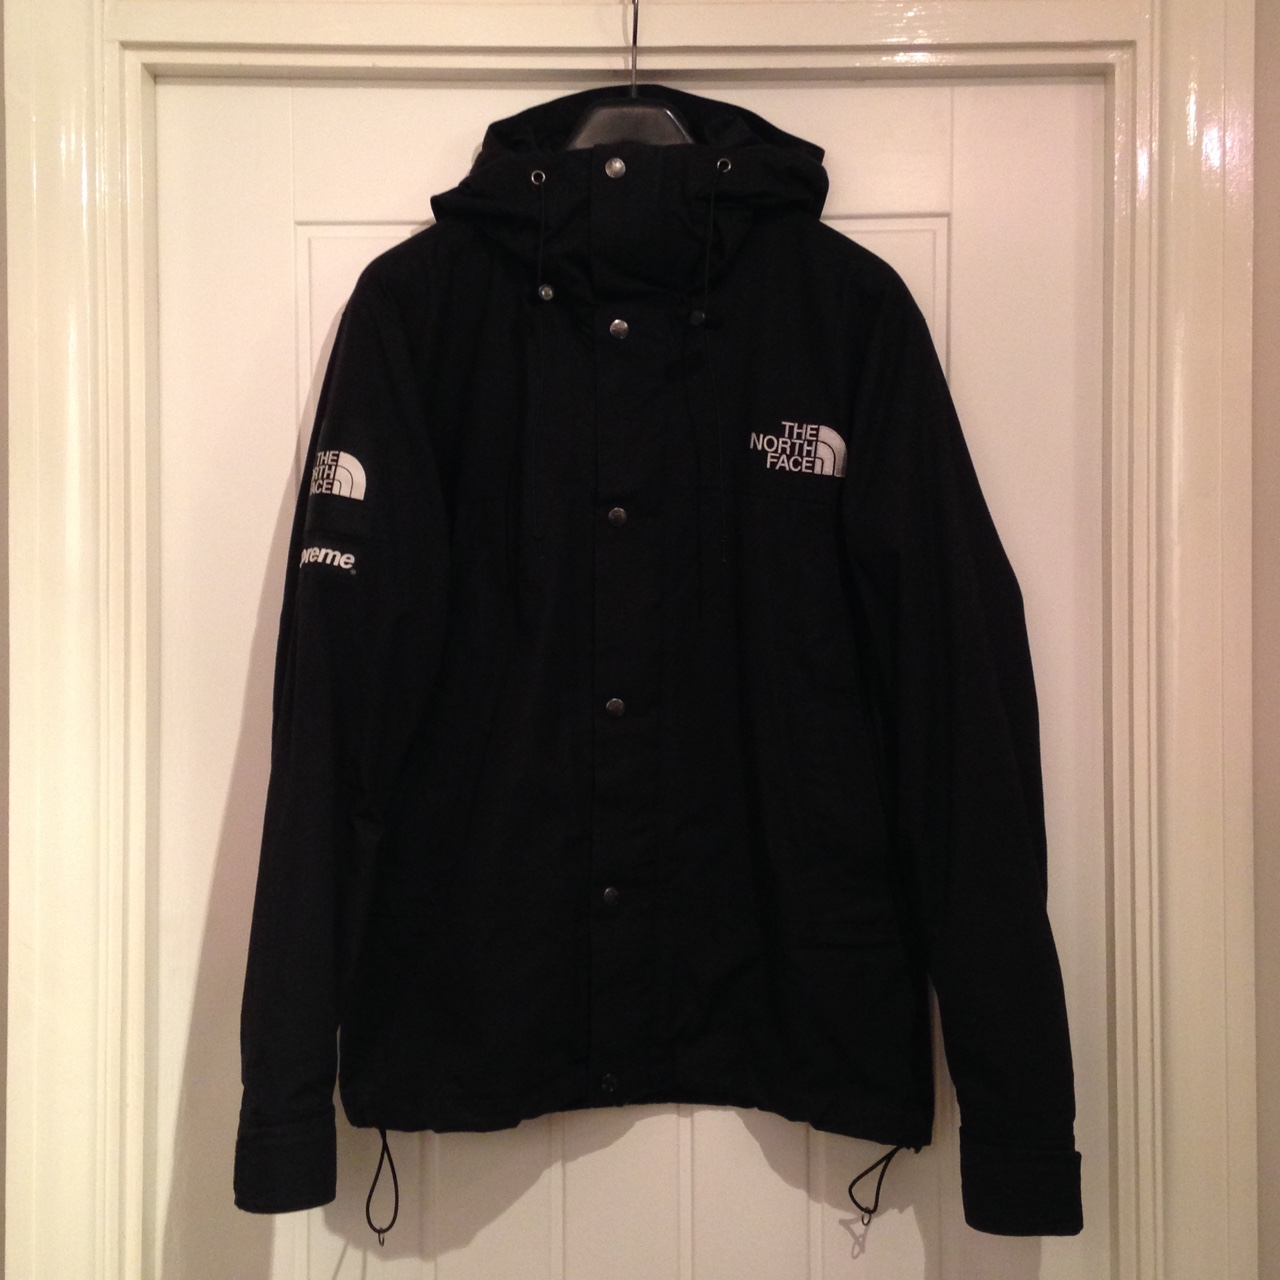 9a7c58650 Rare 2010 Supreme x The North Face Waxed Mountain... - Depop